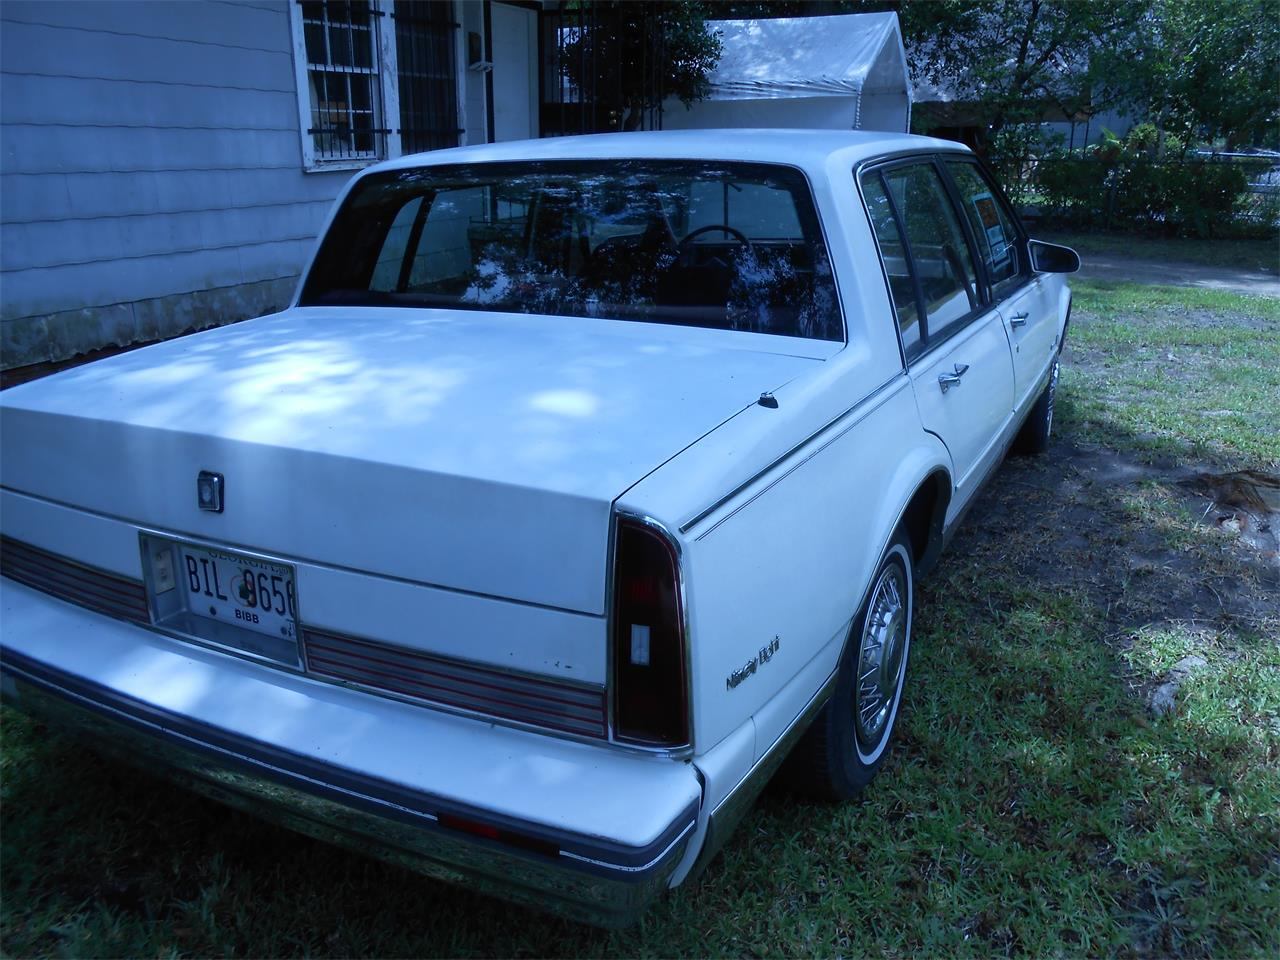 1989 Oldsmobile 98 Regency Brougham (CC-1236449) for sale in Macon, Georgia